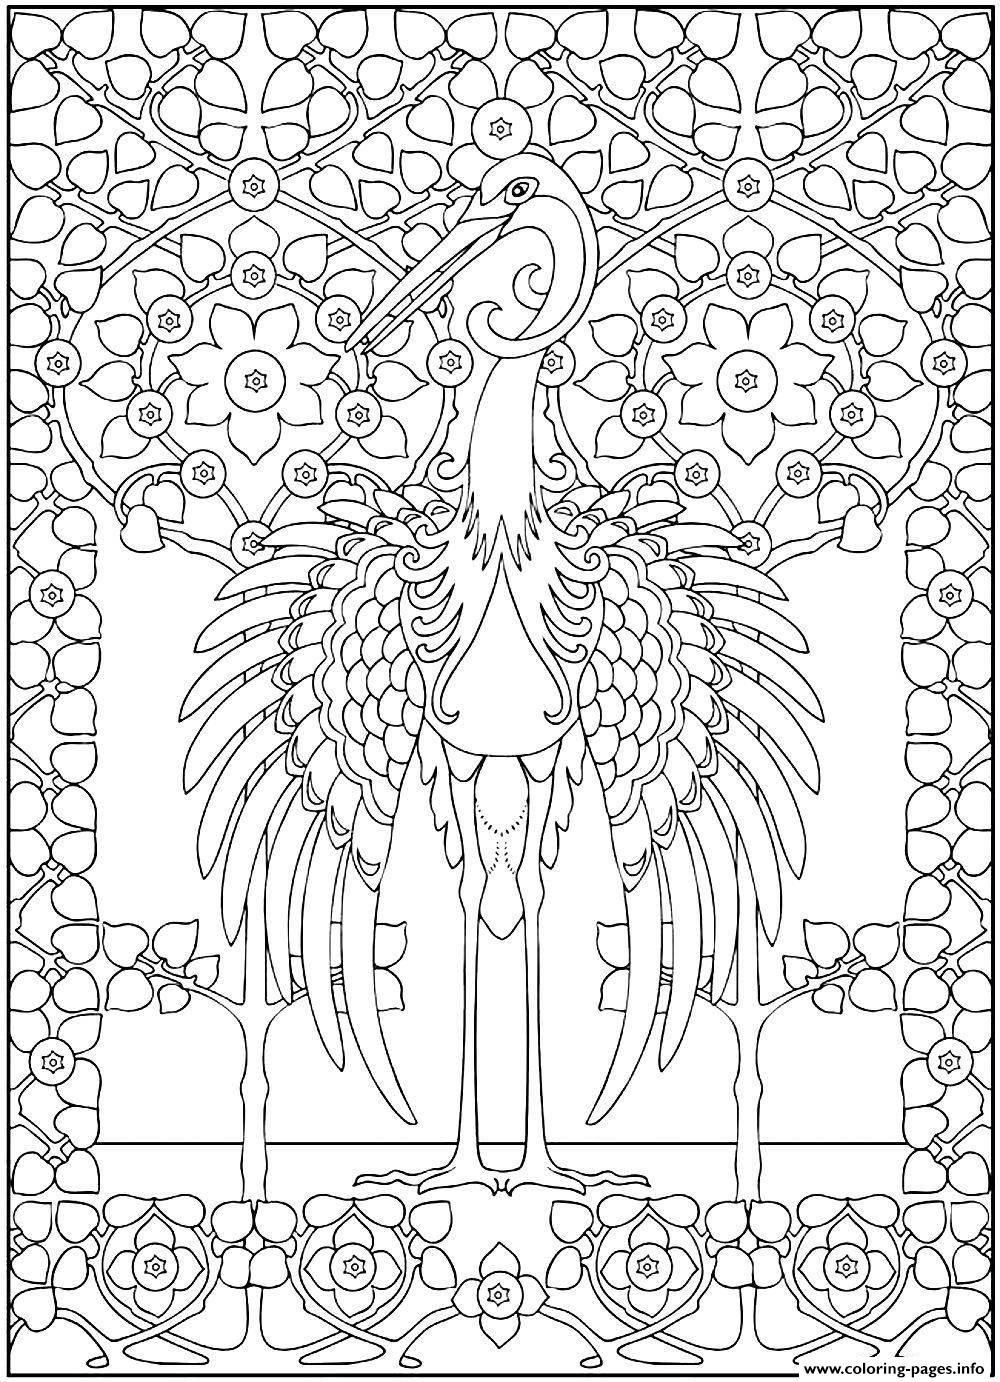 Adult Majestic Heron coloring pages